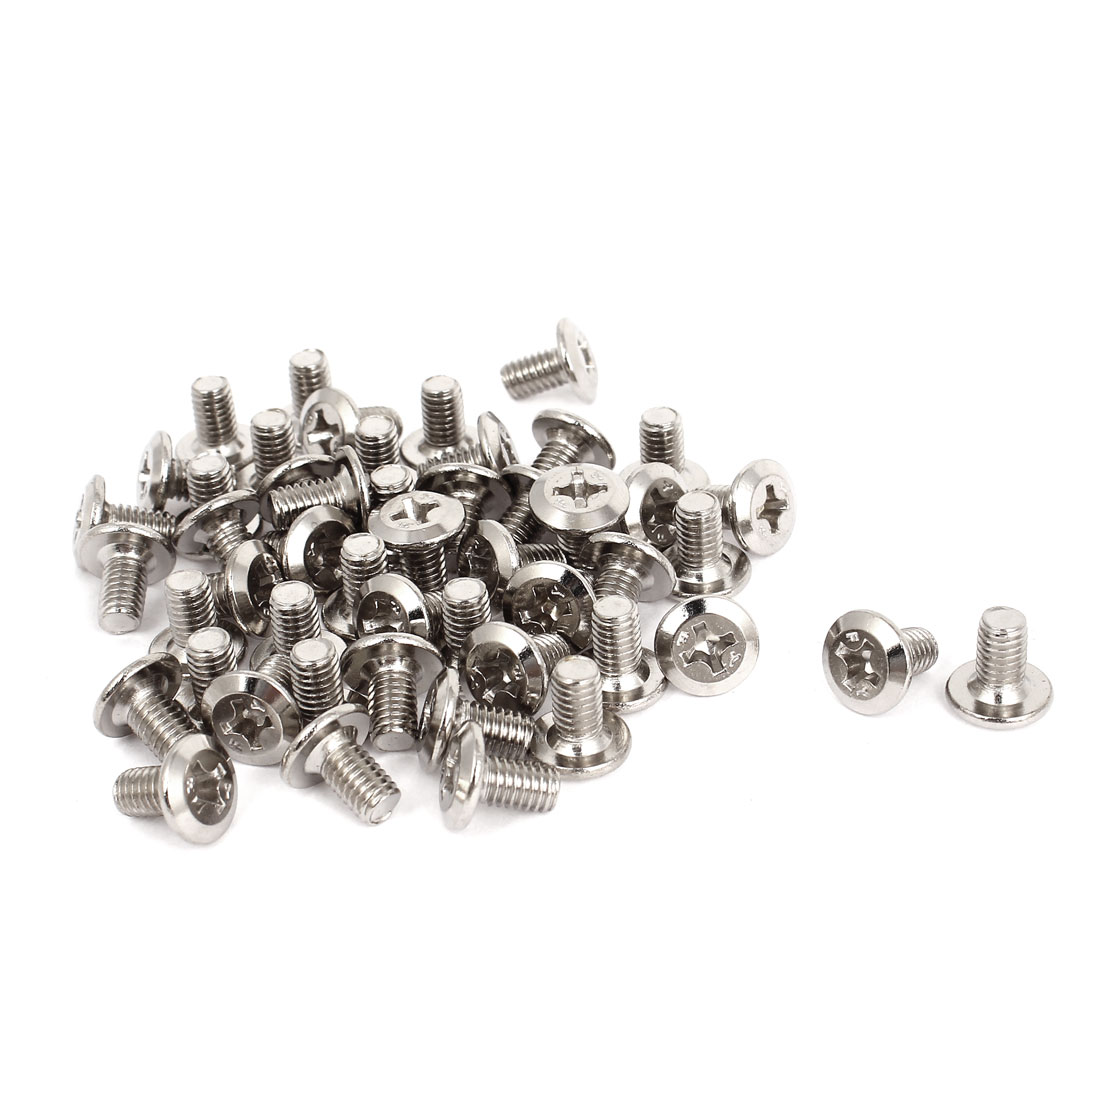 50pcs M6x10mm Phillips Drive Socket Countersunk Flat Head Screws Bolts Fasteners